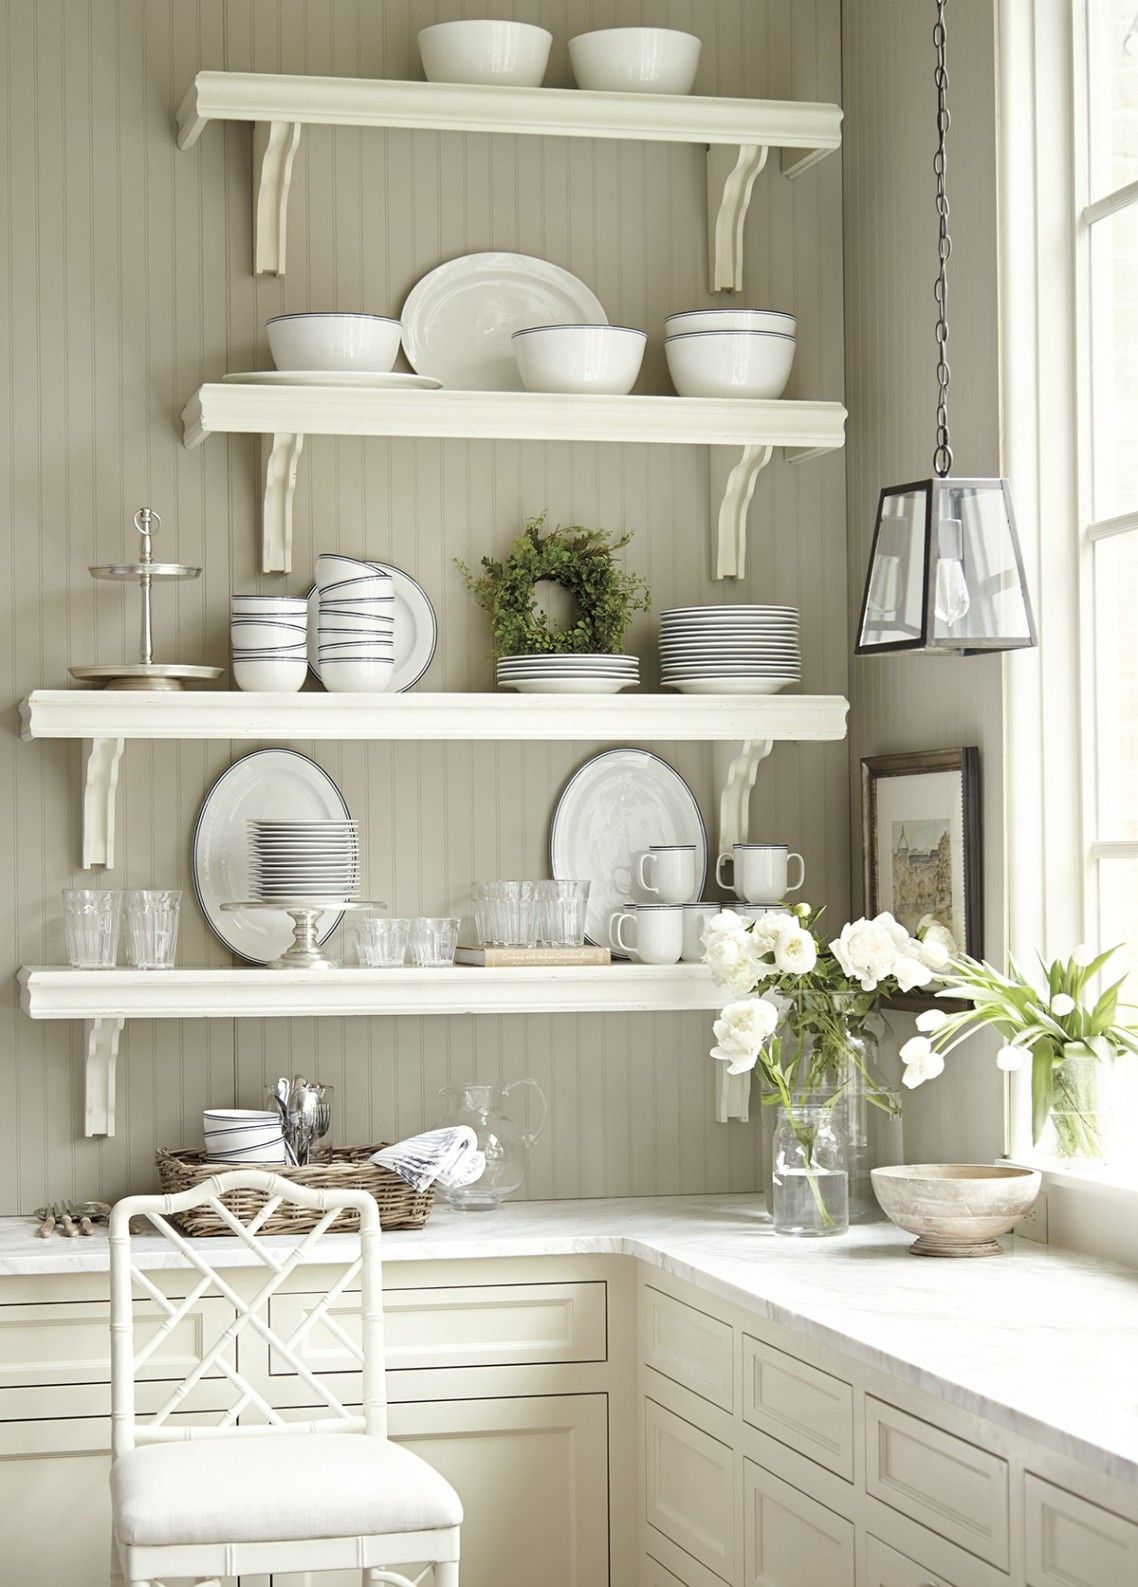 White Stained Wooden 4 Tier Floating Kitchen Shelves With Polished Steel Bracket Above L Shaped